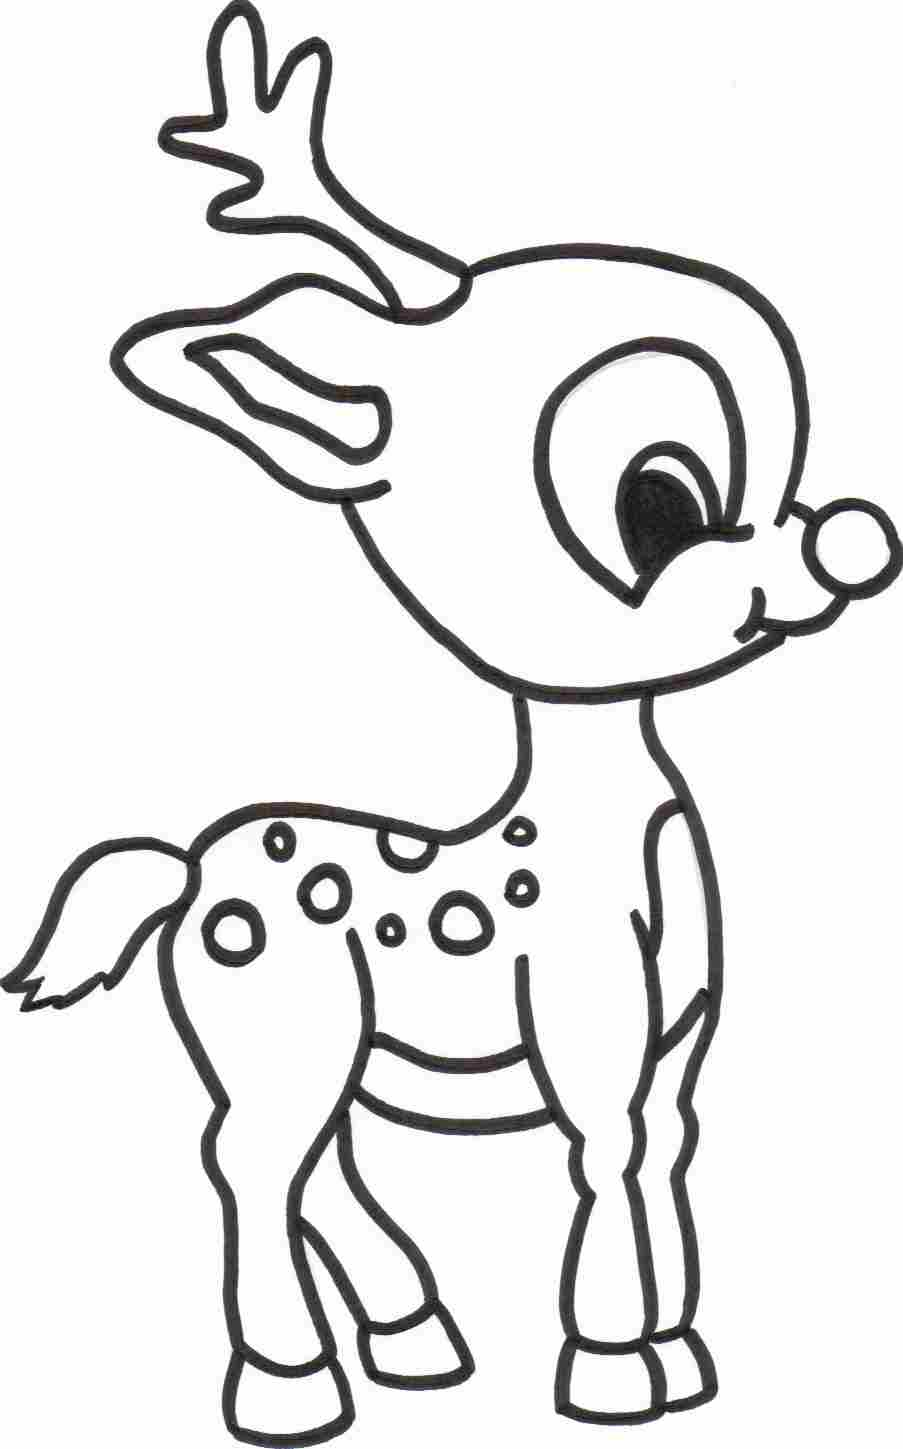 Christmas Reindeer Coloring Pages Images & Pictures - Becuo